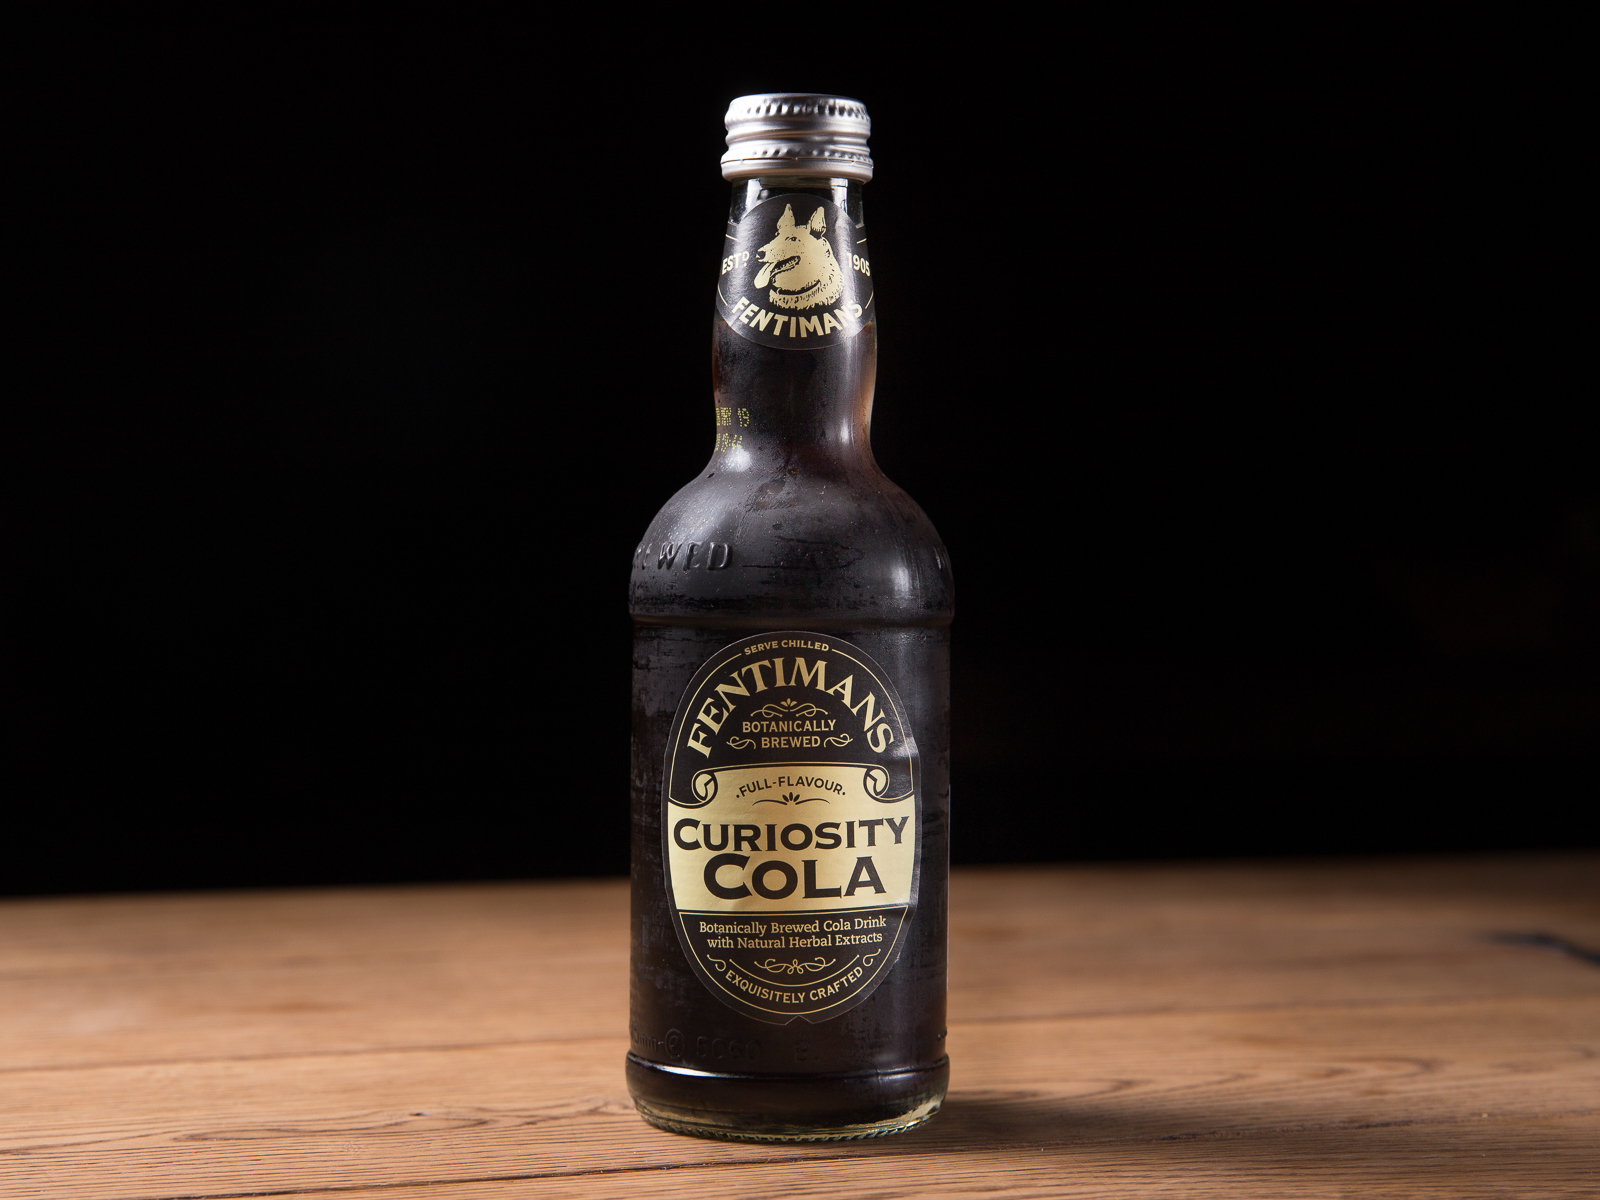 Лимонад Fentimans Curiosity cola